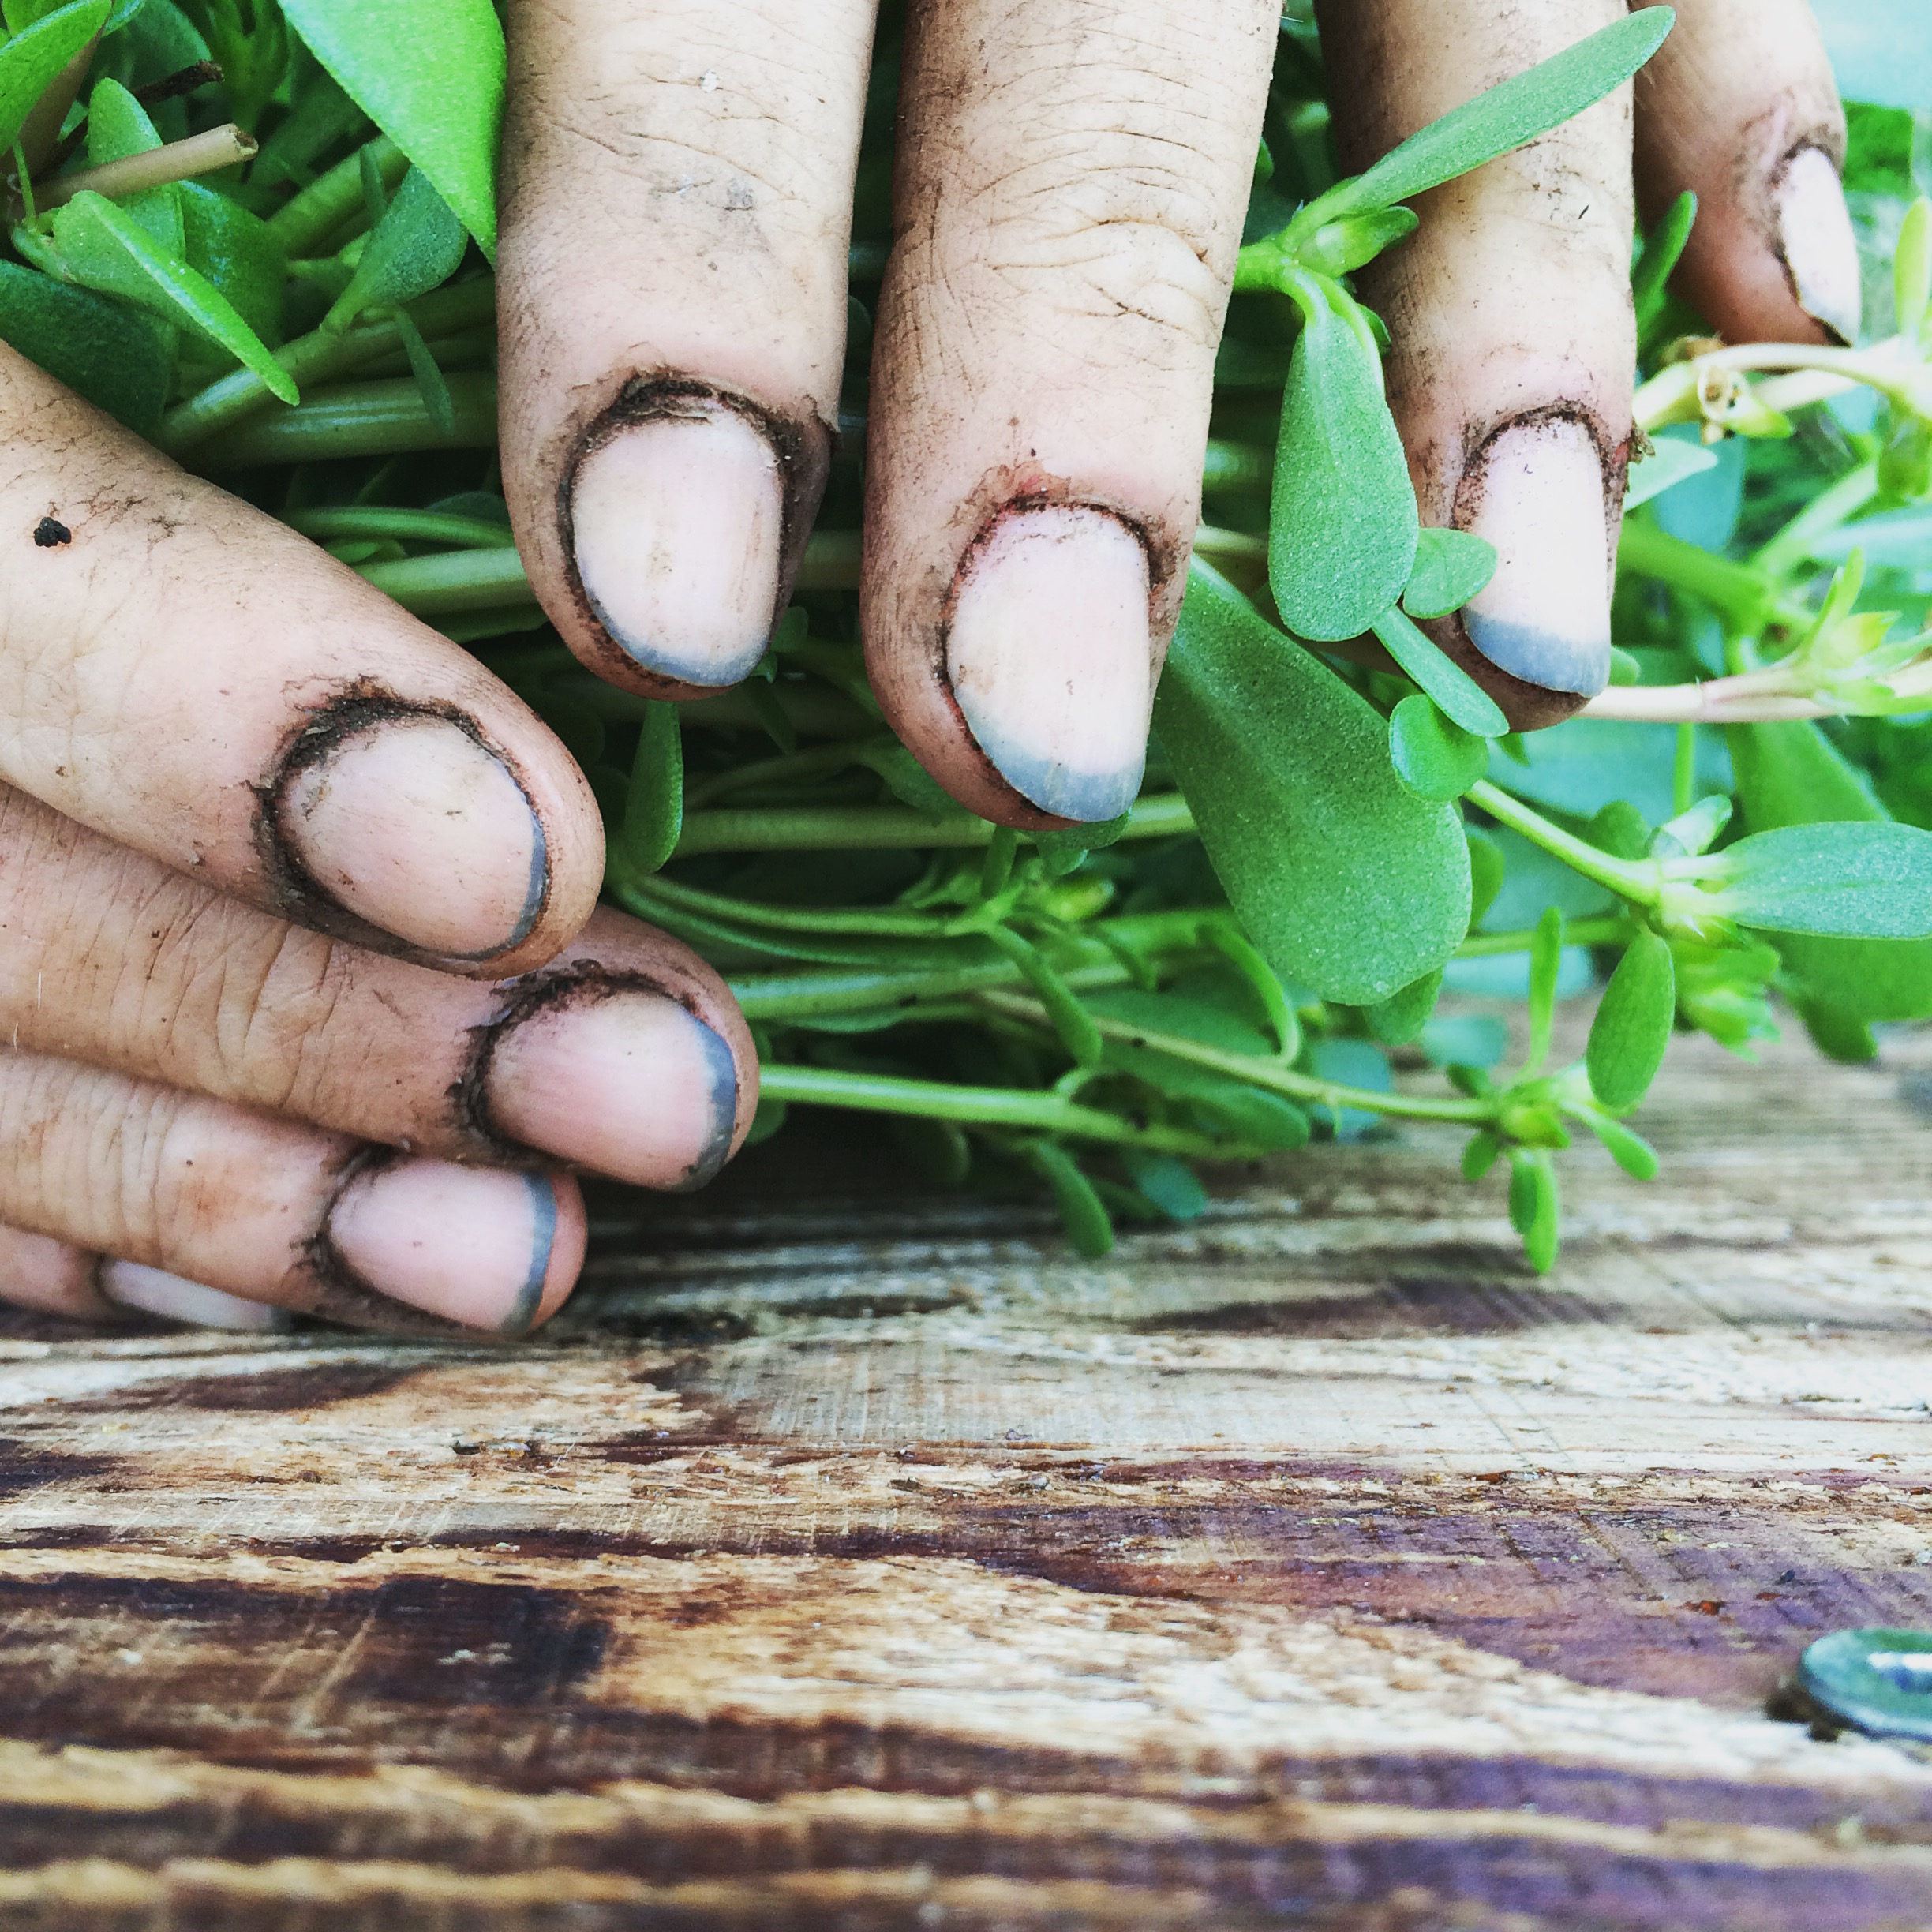 Whenever possible grow your herbs in your garden to develop even greater relationship